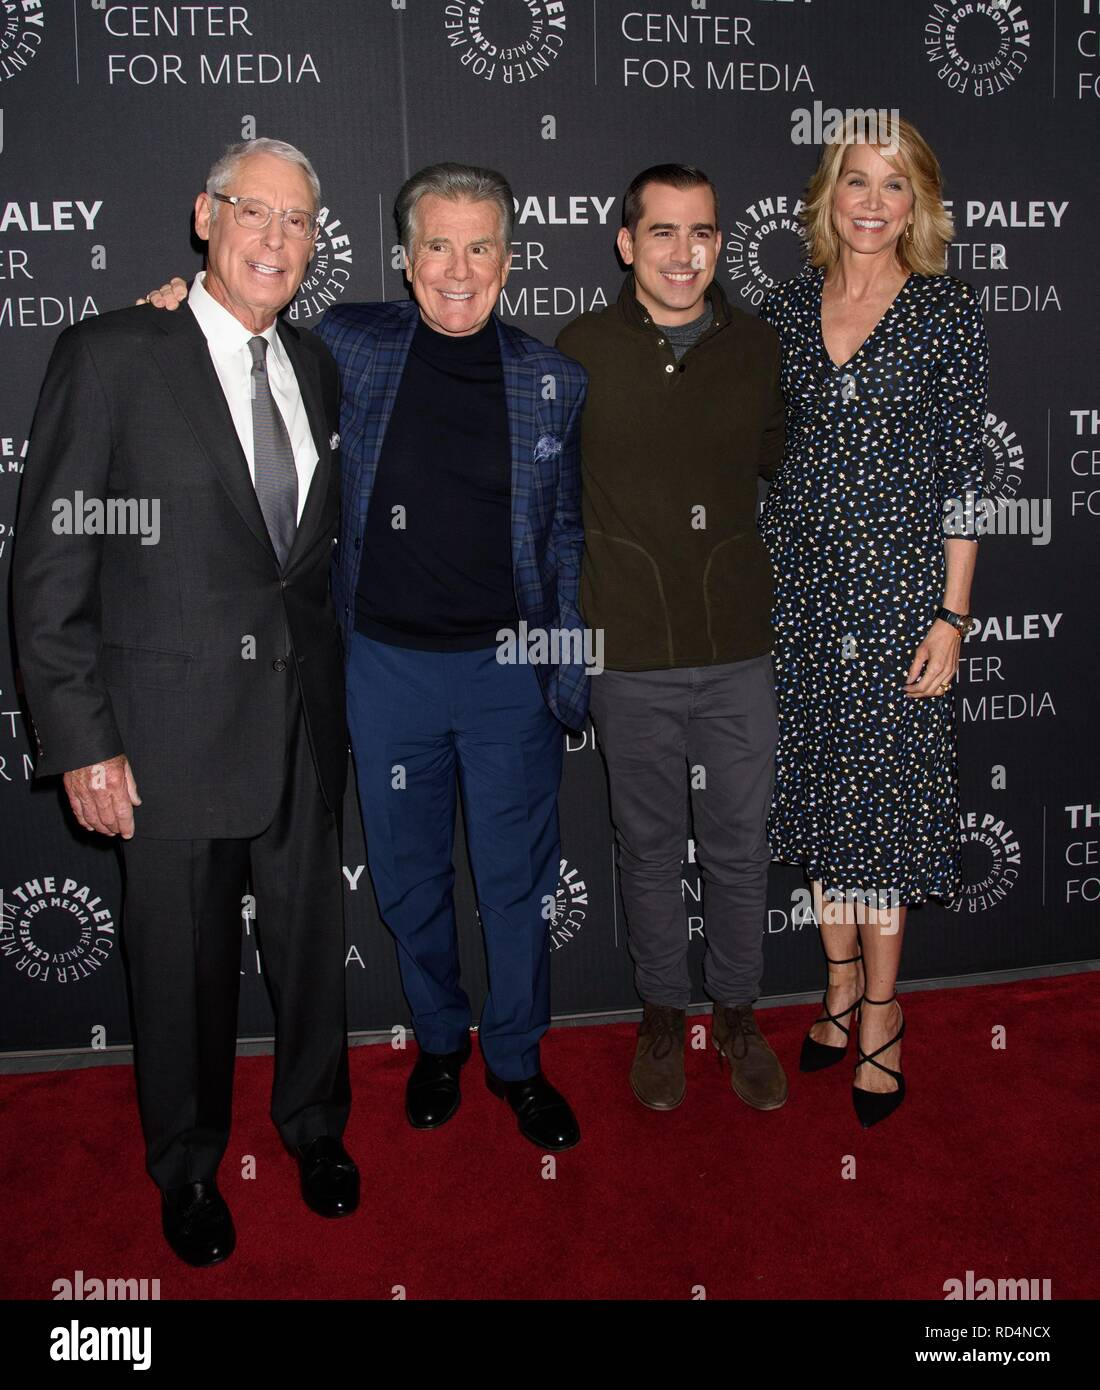 Callahan Walsh High Resolution Stock Photography And Images Alamy Facebook gives people the power to. https www alamy com new york ny usa 16th jan 2019 henry schlieff john walsh callahan walsh paula zahn at arrivals for in pursuit with john walsh screening and conversation the paley center for media new york ny january 16 2019 credit rcfeverett collectionalamy live news image231829946 html